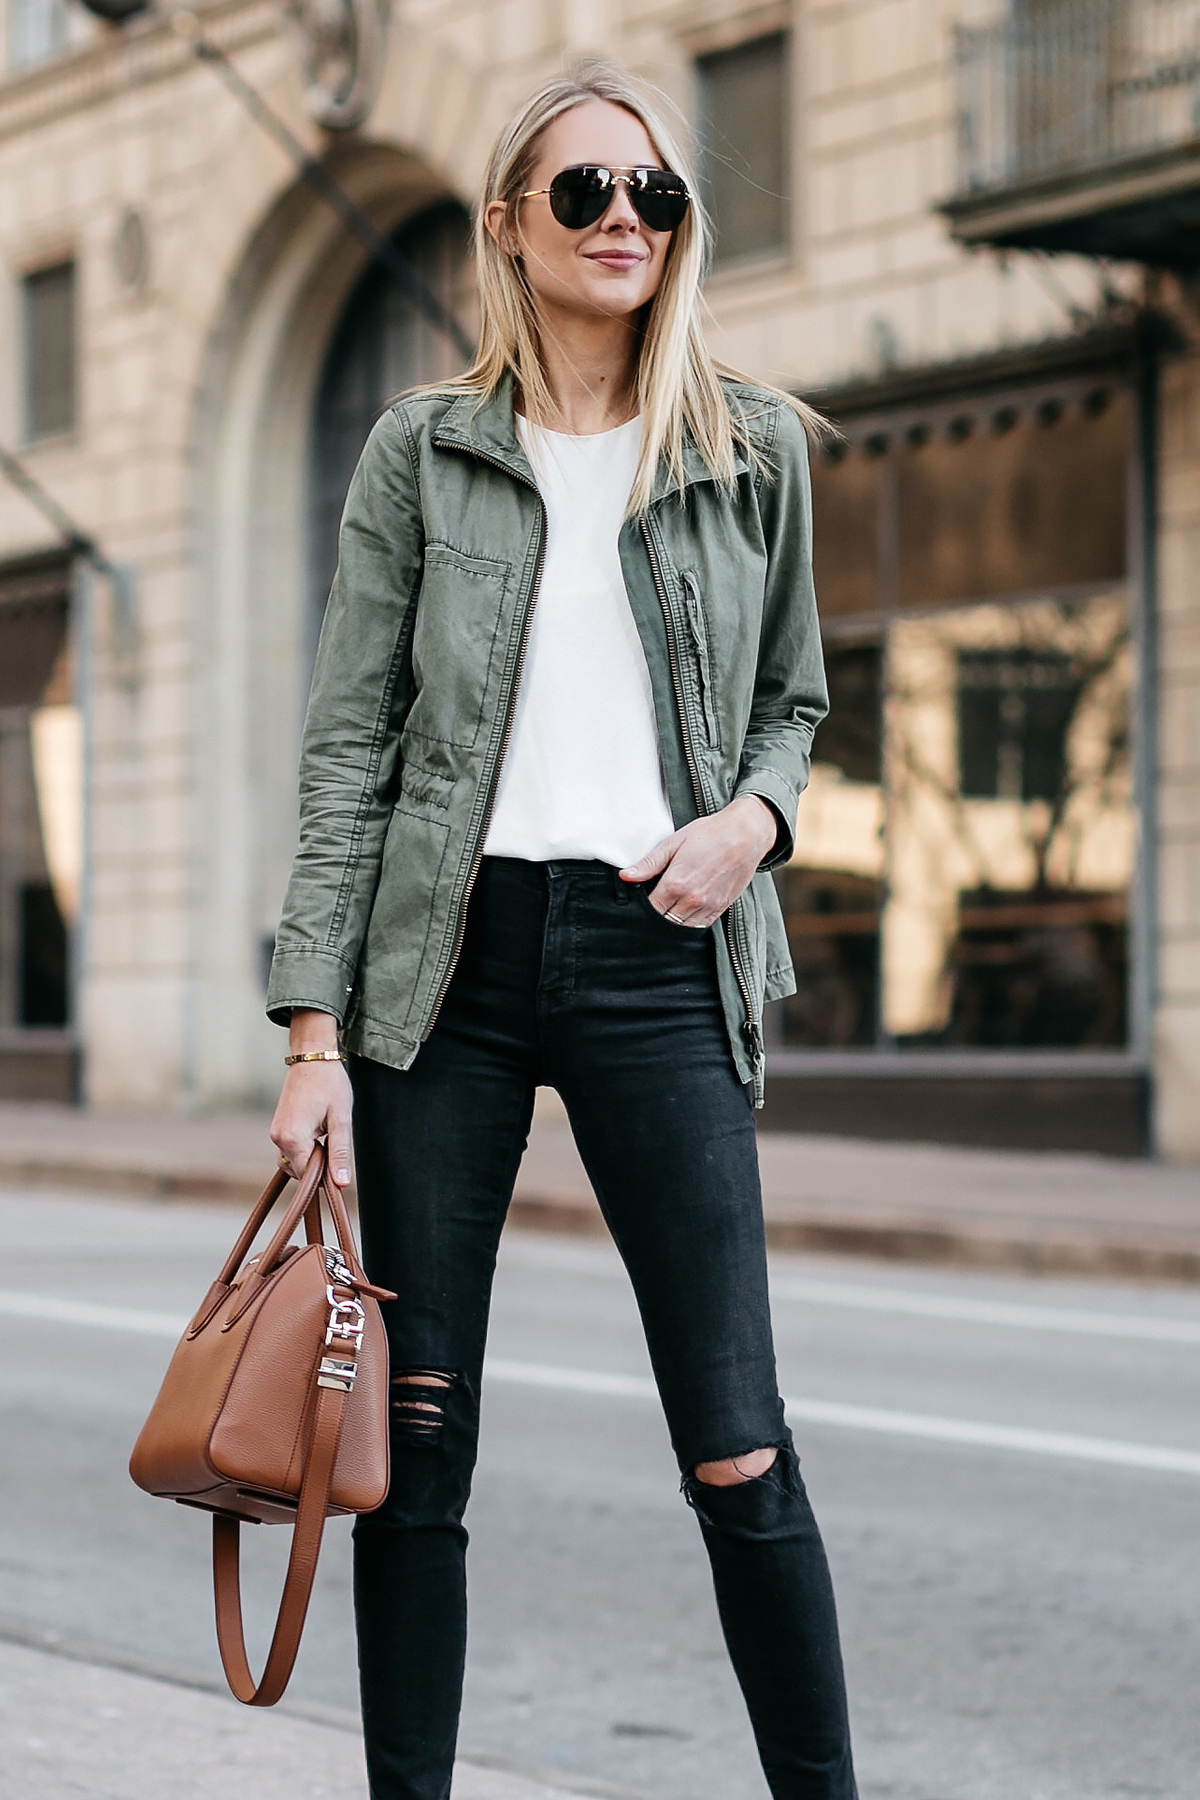 Blonde Woman Wearing Madewell Fleet Jacket Green Jacket White Tank Madewell Black Ripped Skinny Jeans Givenchy Antigona Small Satchel Cognac Celine Aviator Sunglasses Fashion Jackson Dallas Blogger Fashion Blogger Street Style